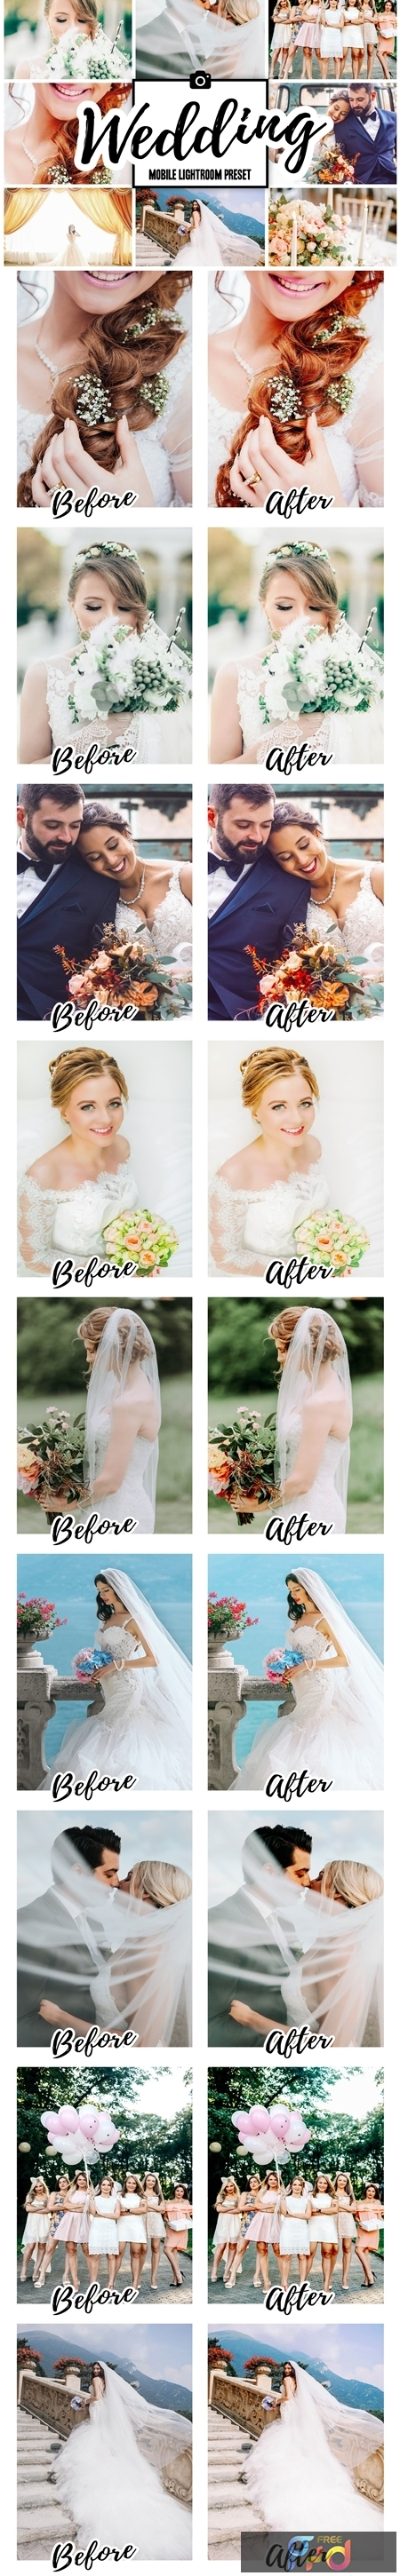 WEDDING Mobile Lightroom Presets 3858882 1